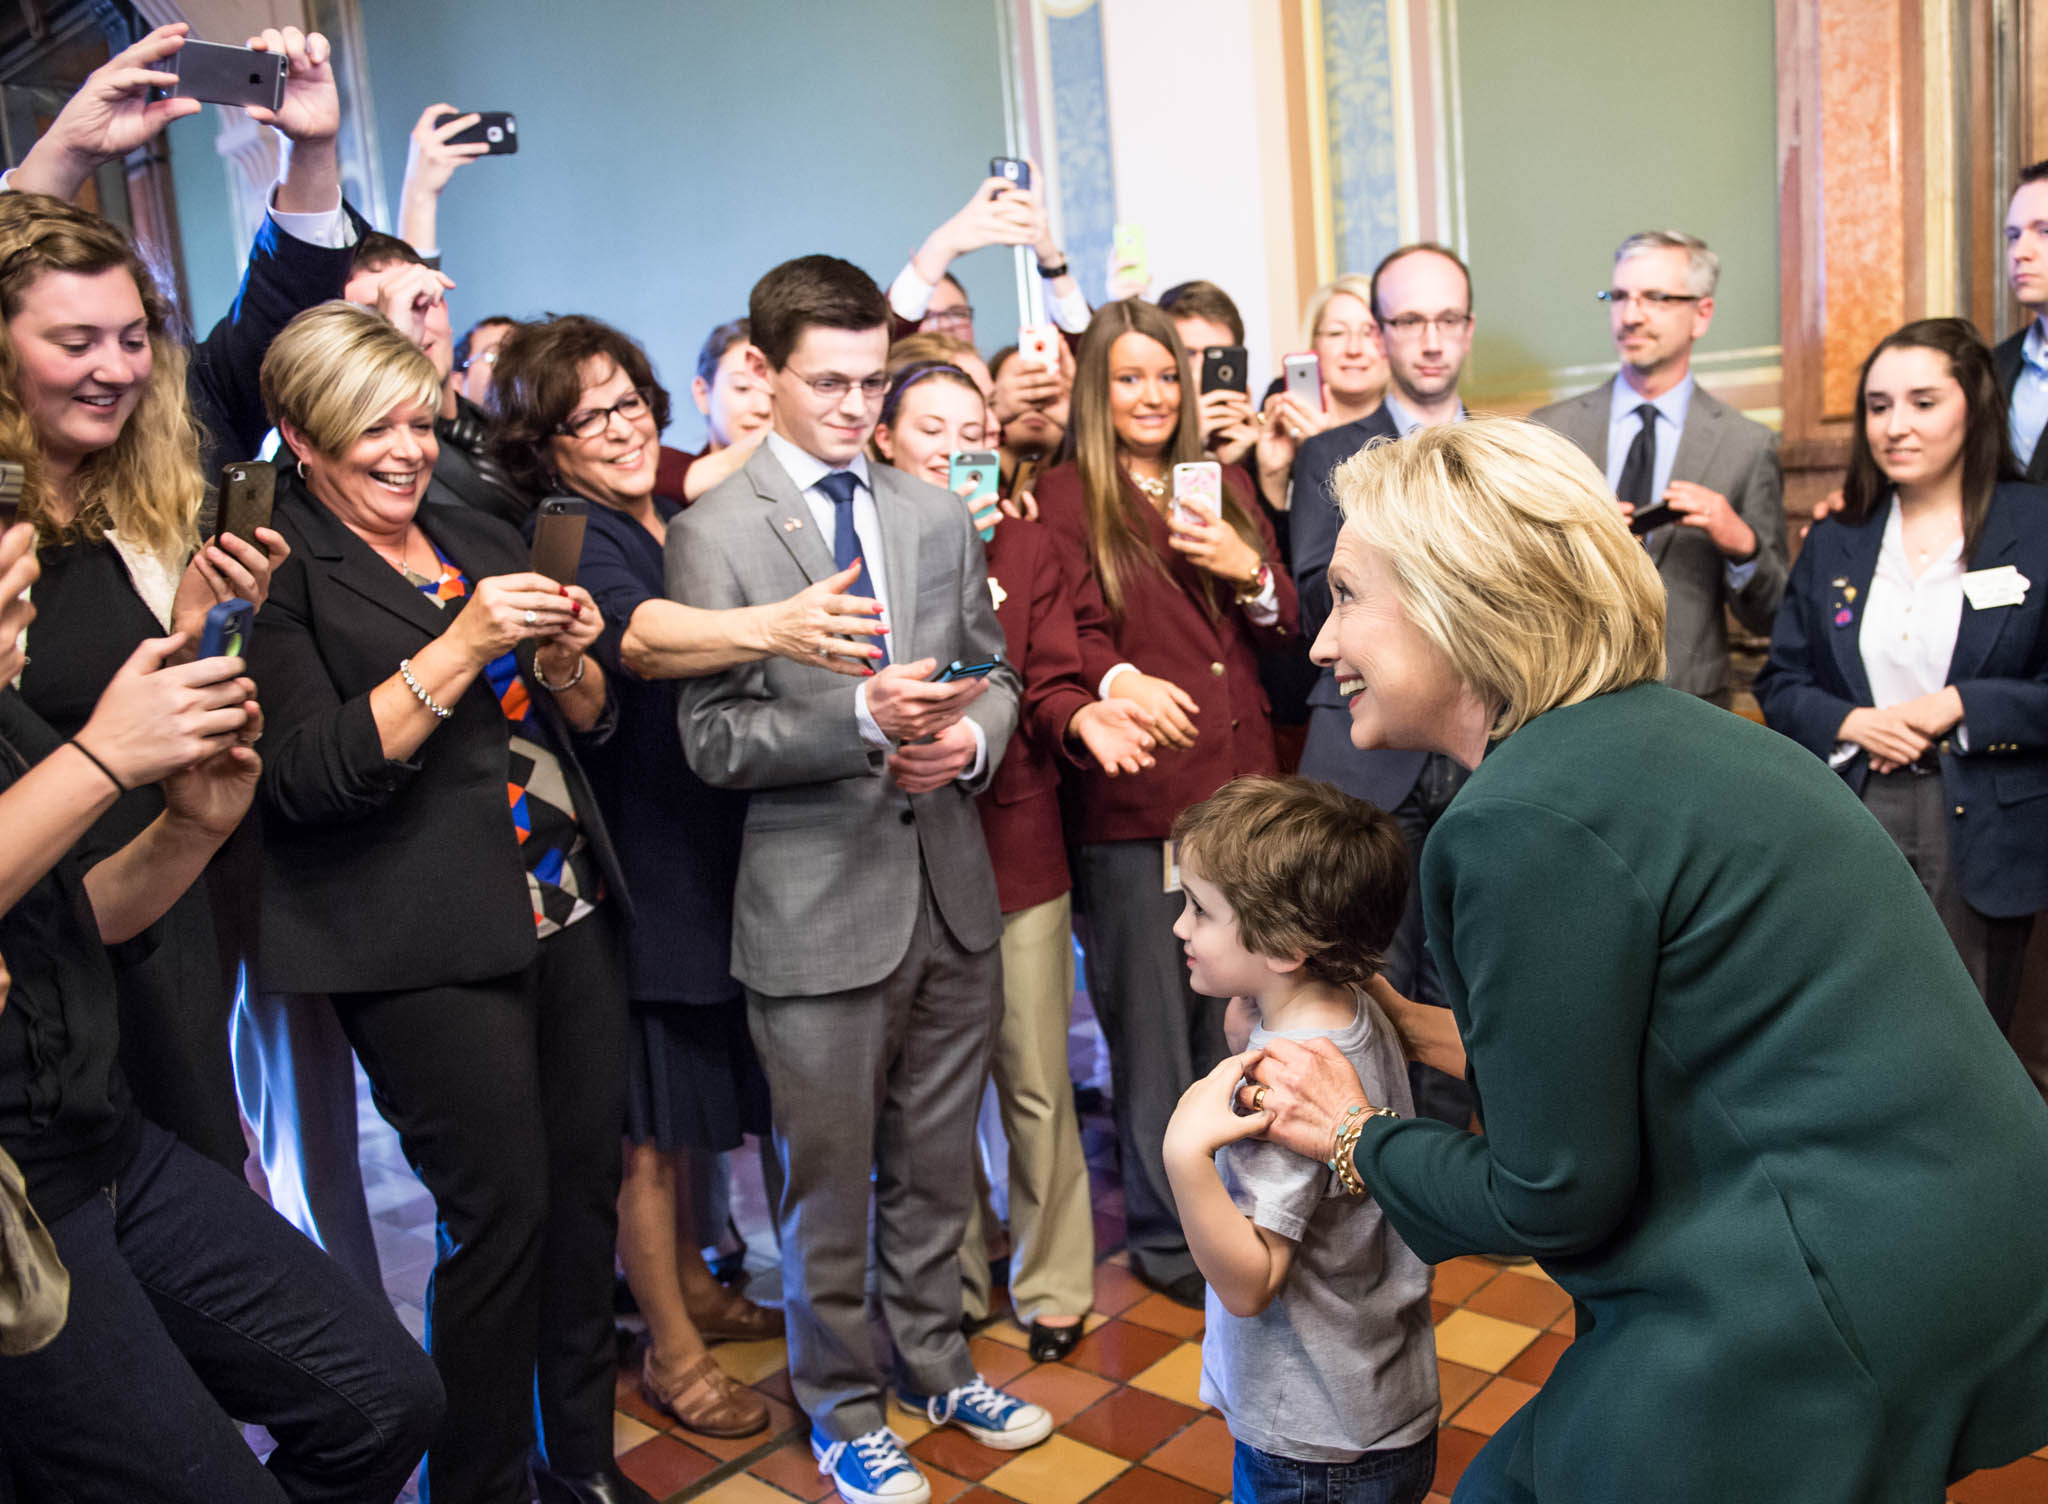 Hillary Clinton visits the Iowa State Capitol. April 15, 2015.